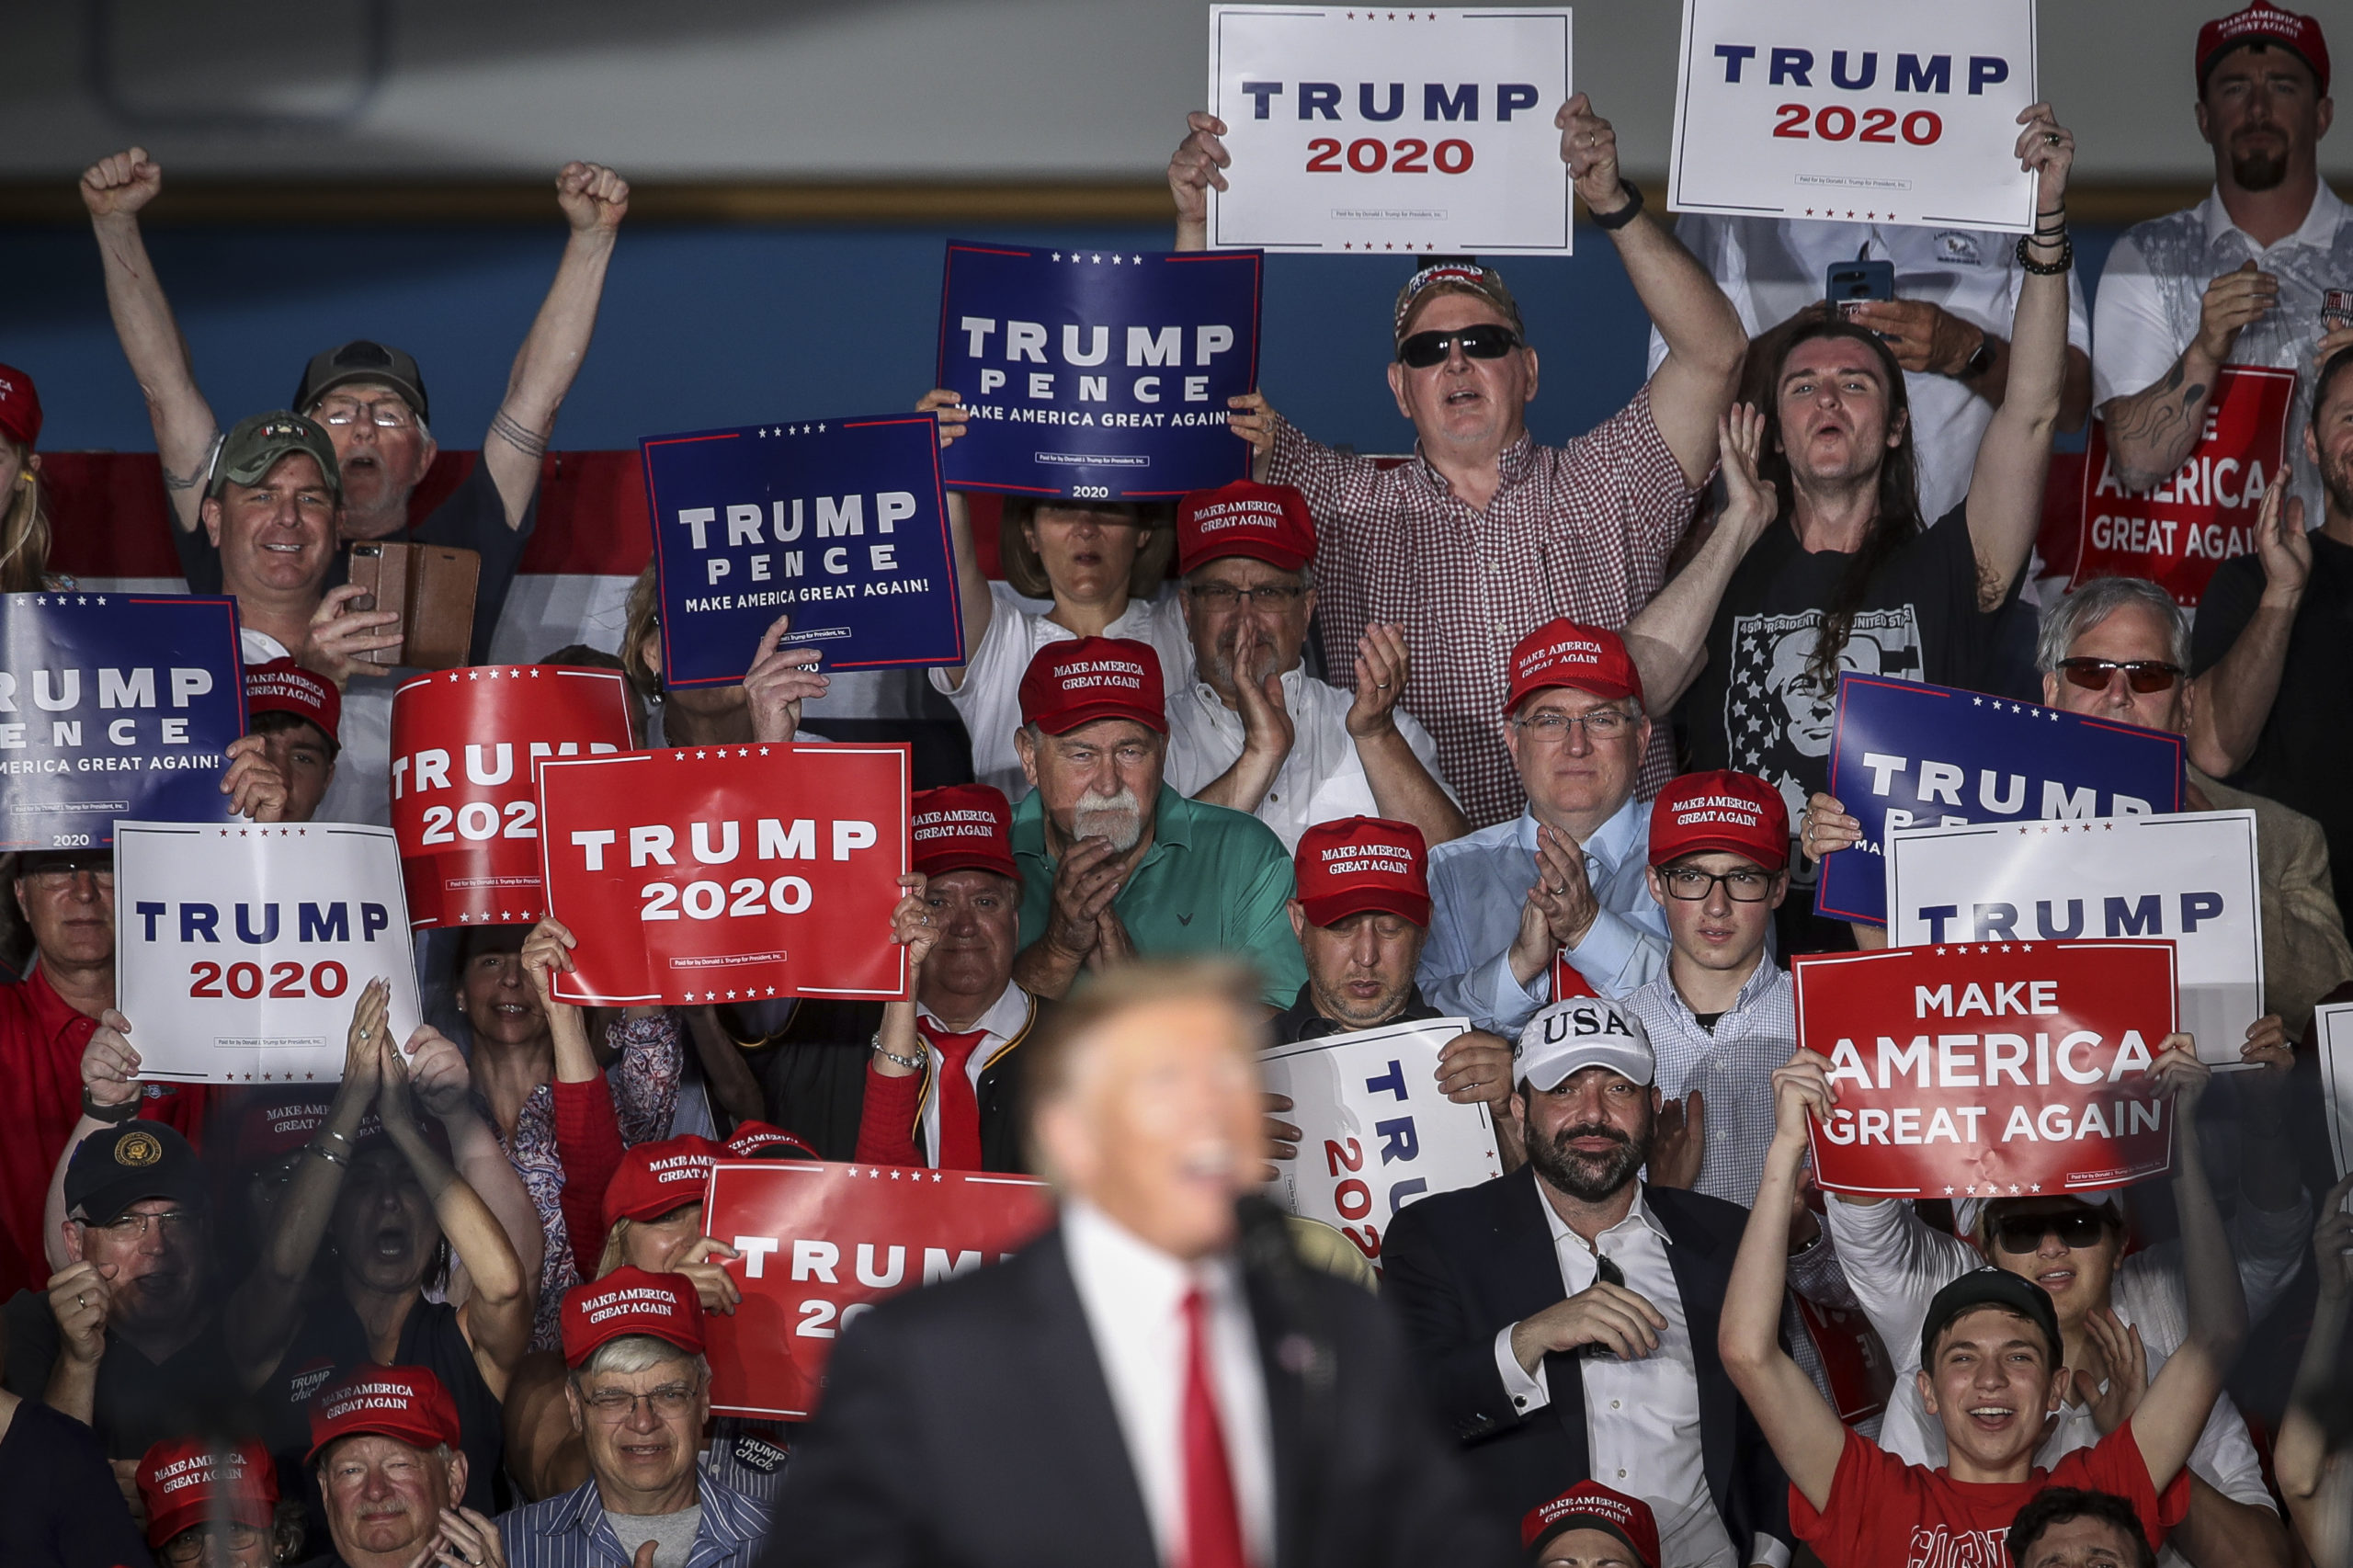 MONTOURSVILLE, PA - MAY 20: The crowd cheers as U.S. President Donald Trump speaks during a 'Make America Great Again' campaign rally at Williamsport Regional Airport, May 20, 2019 in Montoursville, Pennsylvania. Trump is making a trip to the swing state to drum up Republican support on the eve of a special election in Pennsylvania's 12th congressional district, with Republican Fred Keller facing off against Democrat Marc Friedenberg. (Photo by Drew Angerer/Getty Images)